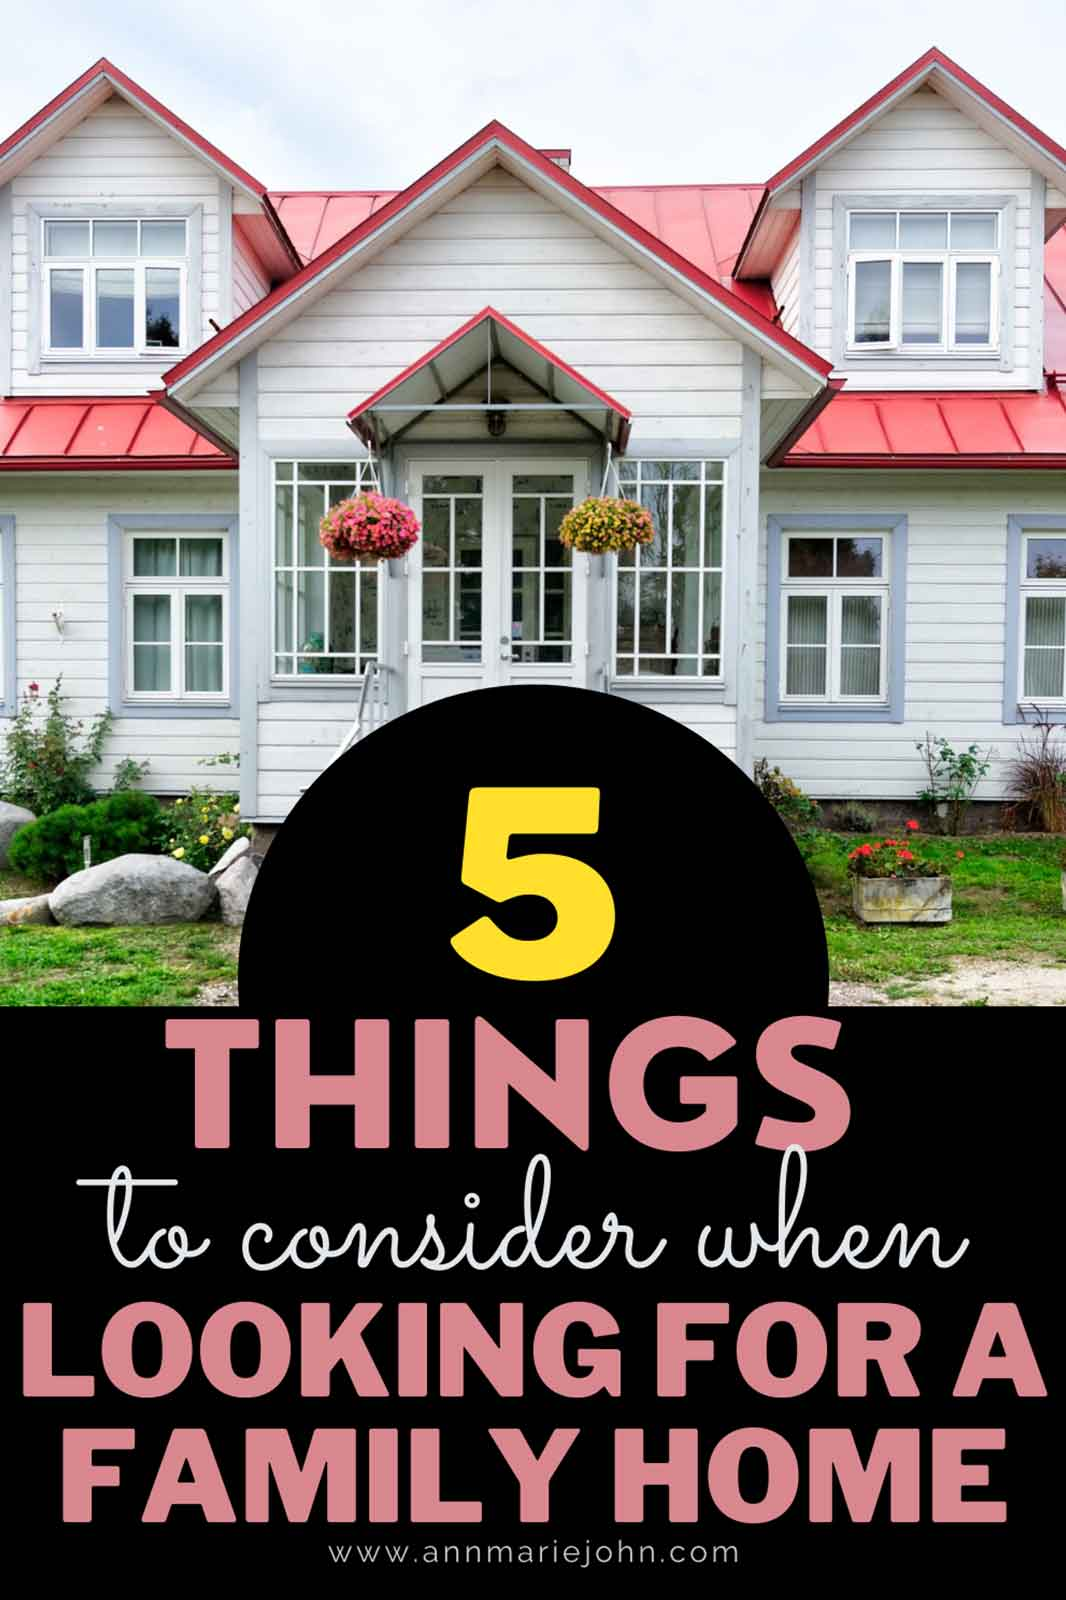 5 Things to Consider When Looking for the Perfect Family Home